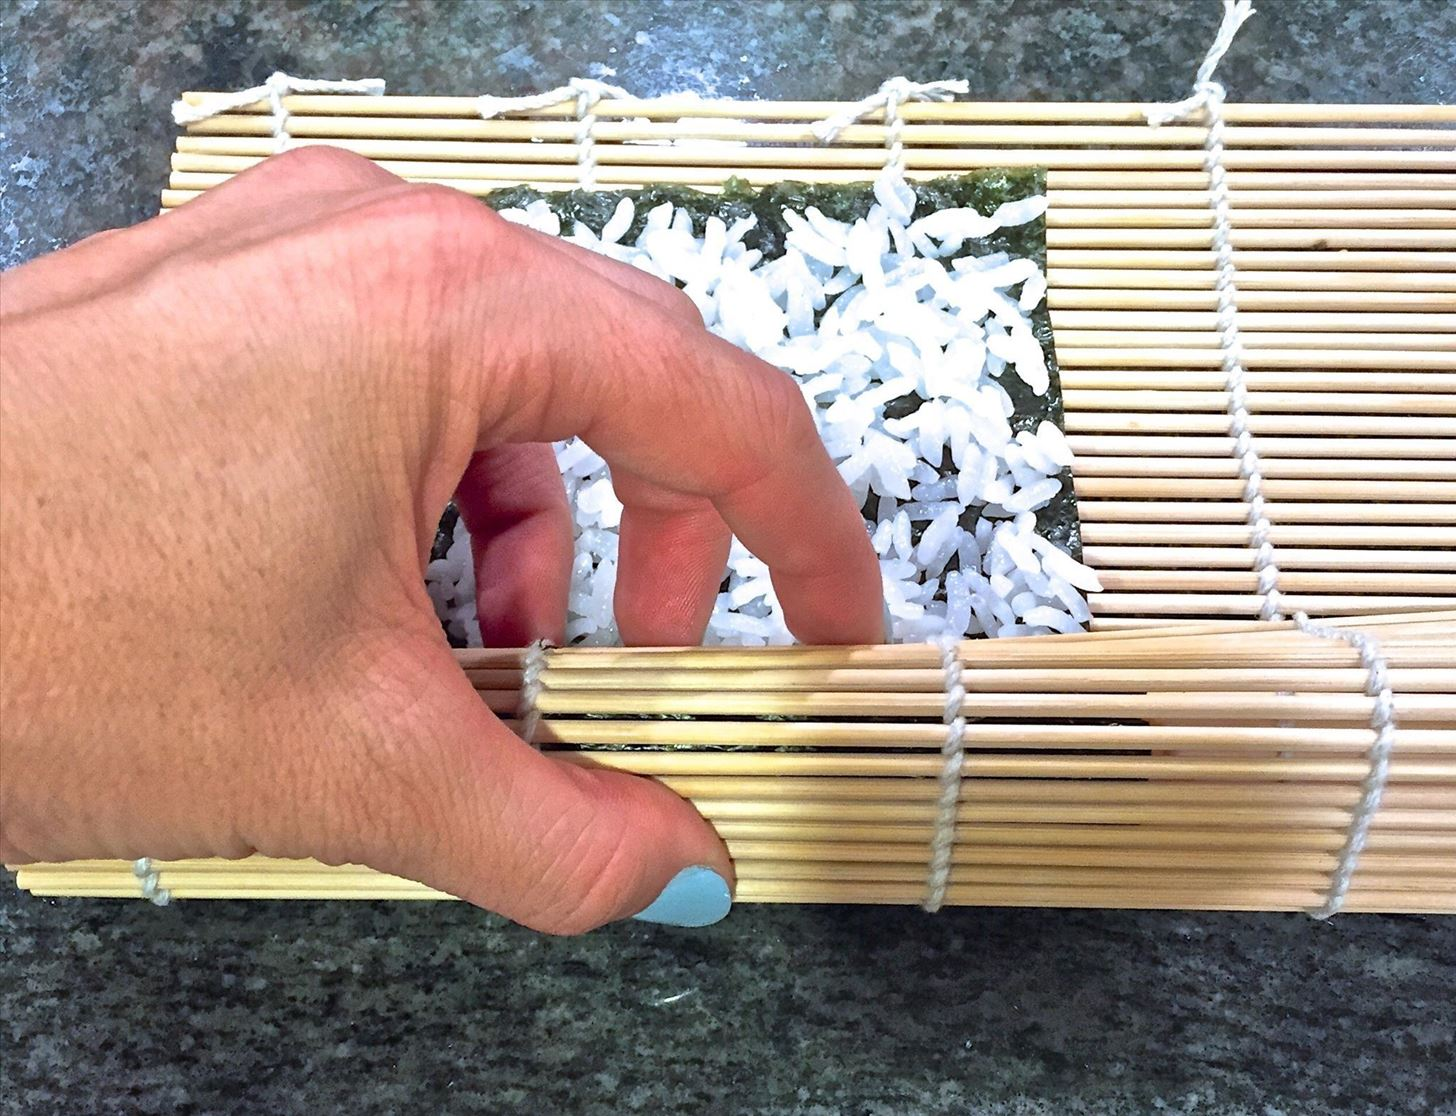 A Step-by-Step Guide to Homemade Sushi Rolls